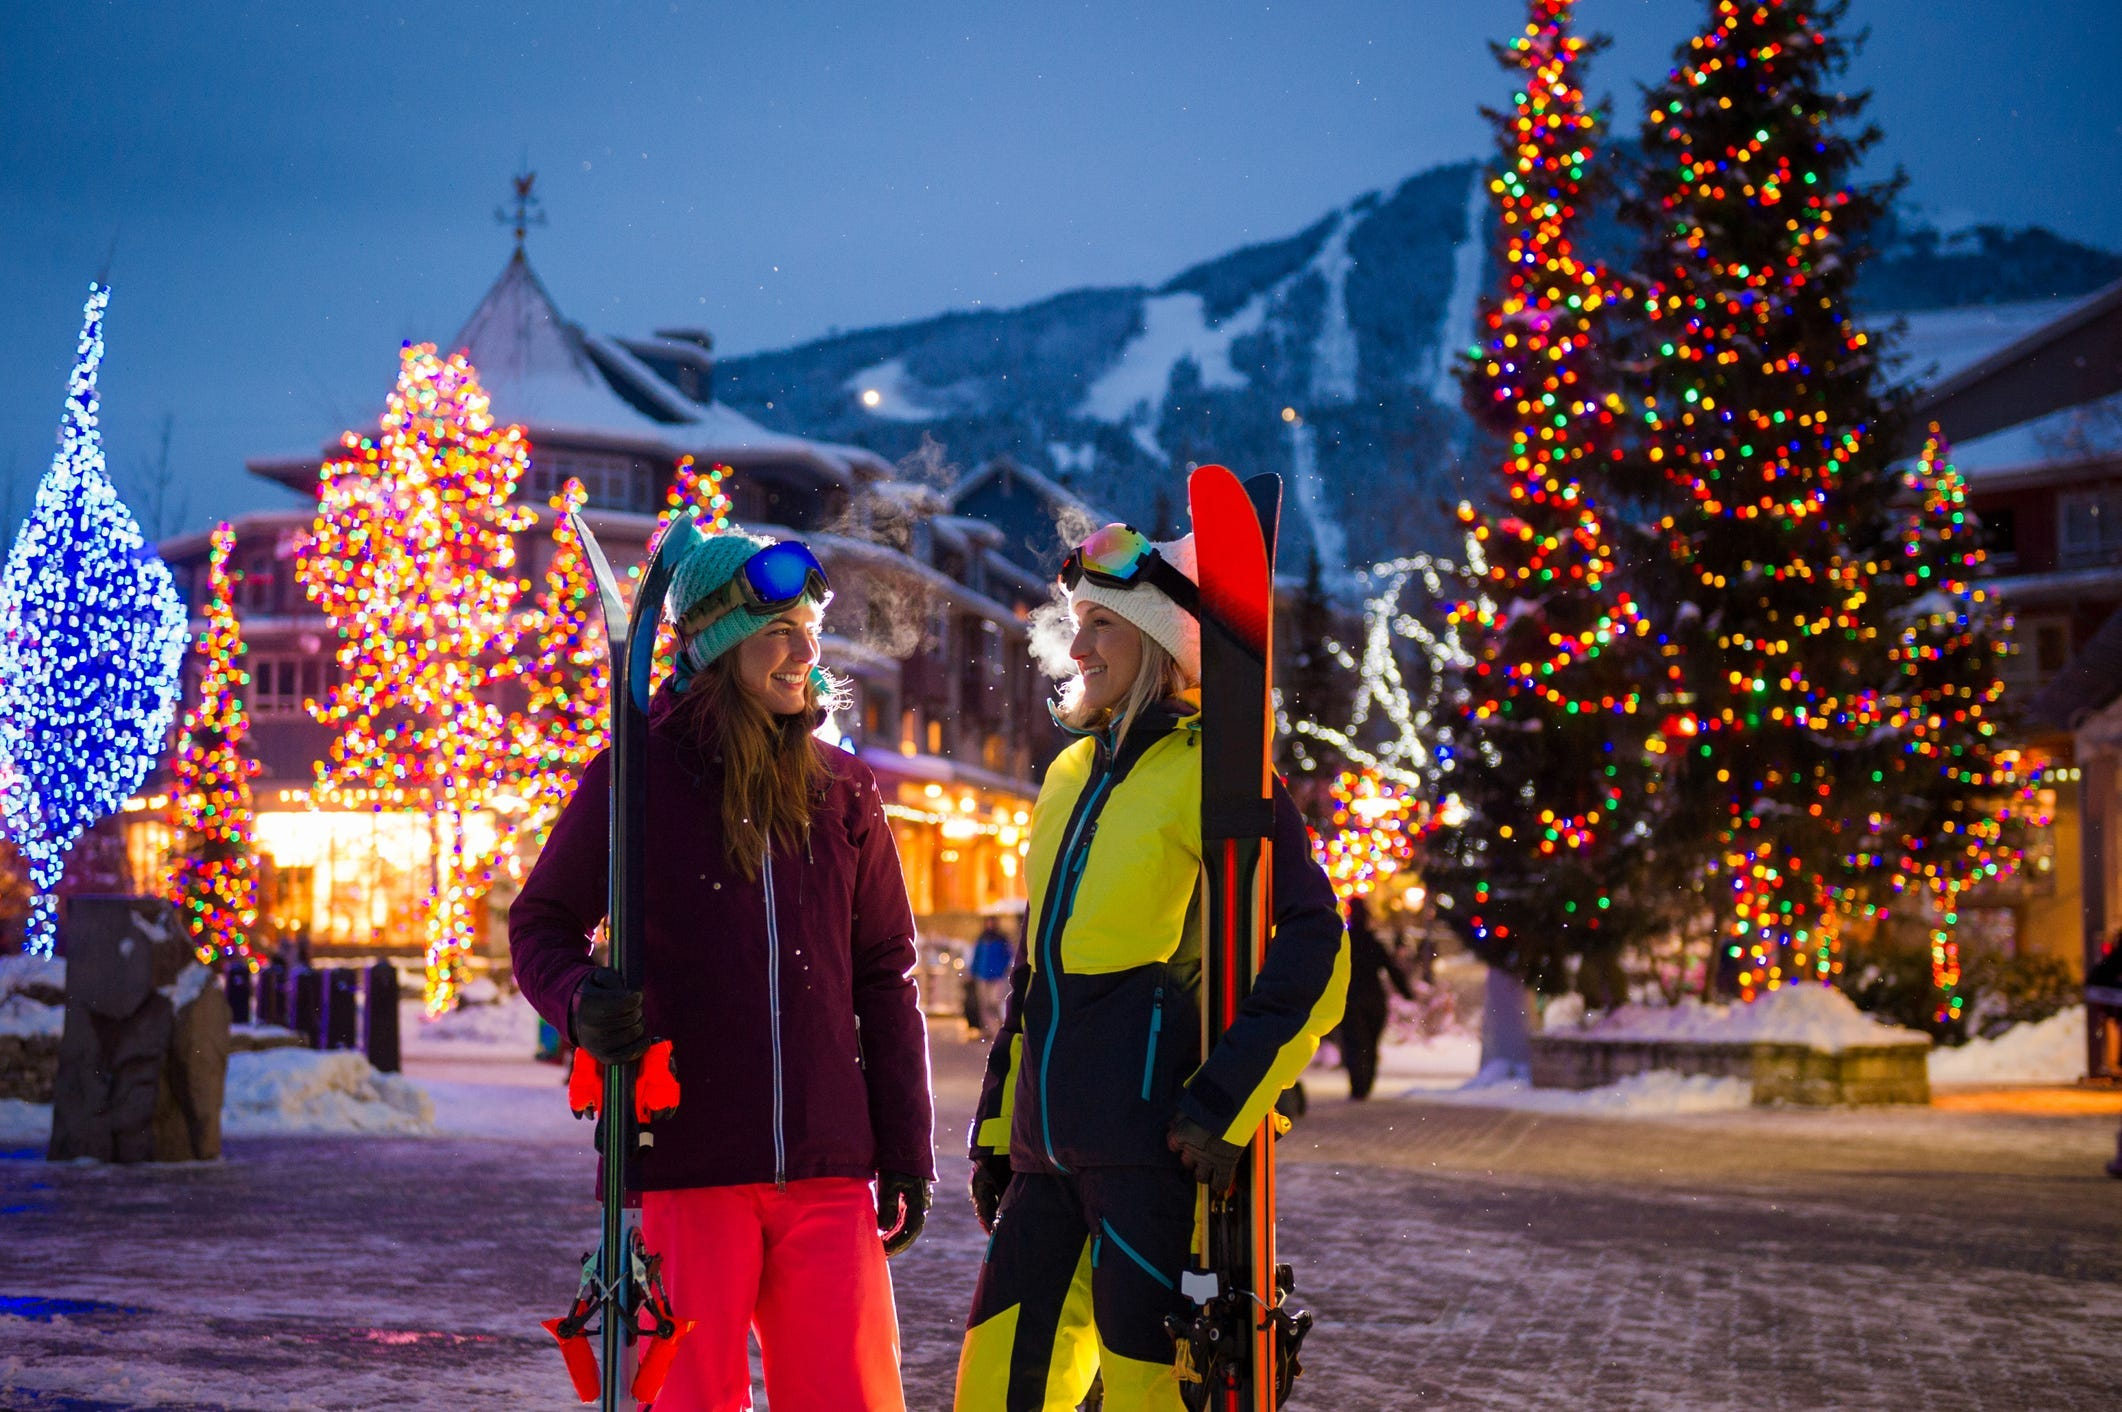 These are the best ski towns, according to readers